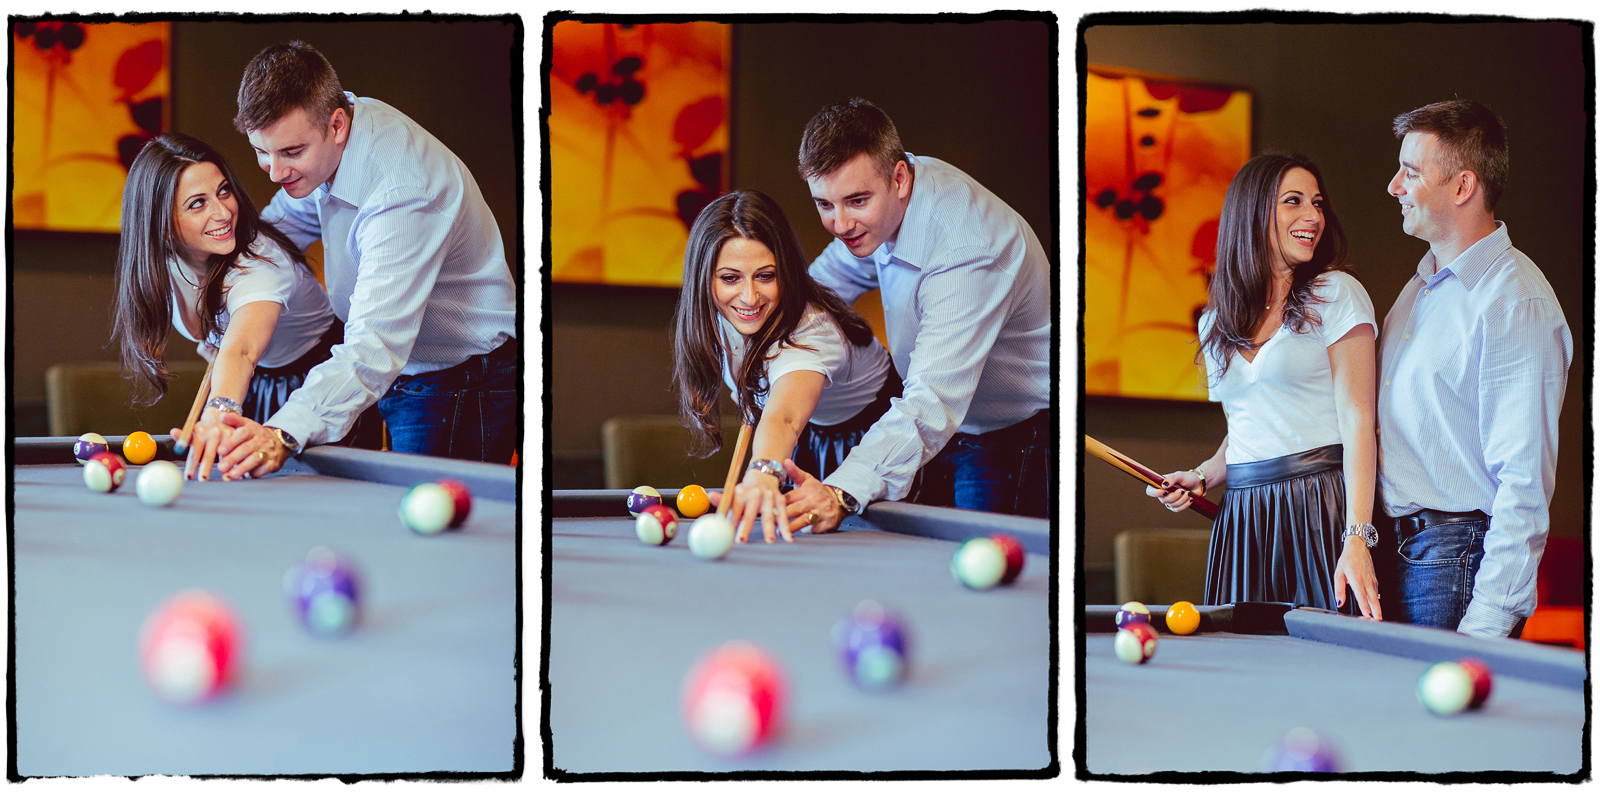 Marisa & Rob's apartment building had a lounge with a pool table, so naturally we got some cute shots of them playing together.